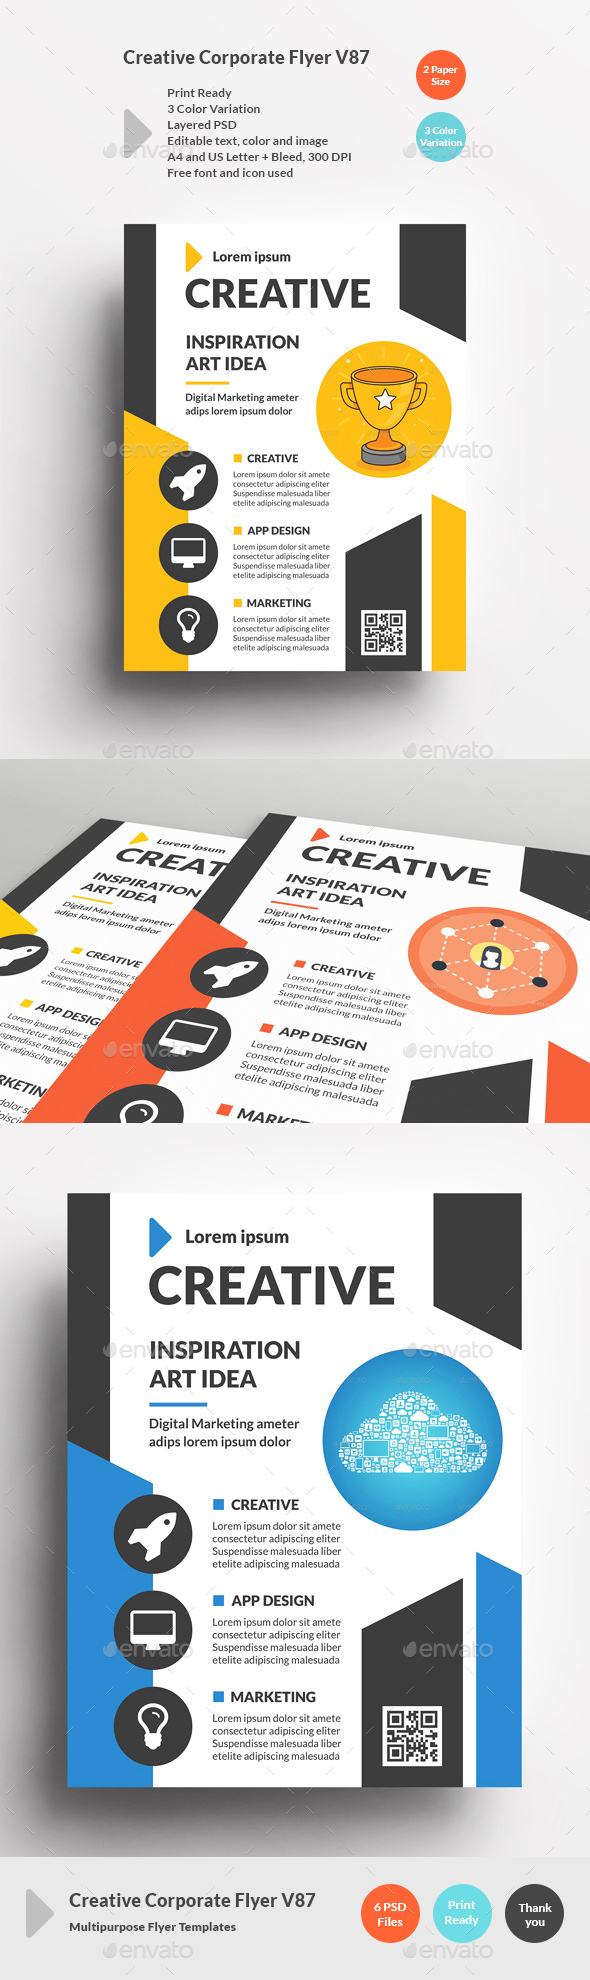 Creative Corporate Flyer V87 - Corporate Flyers